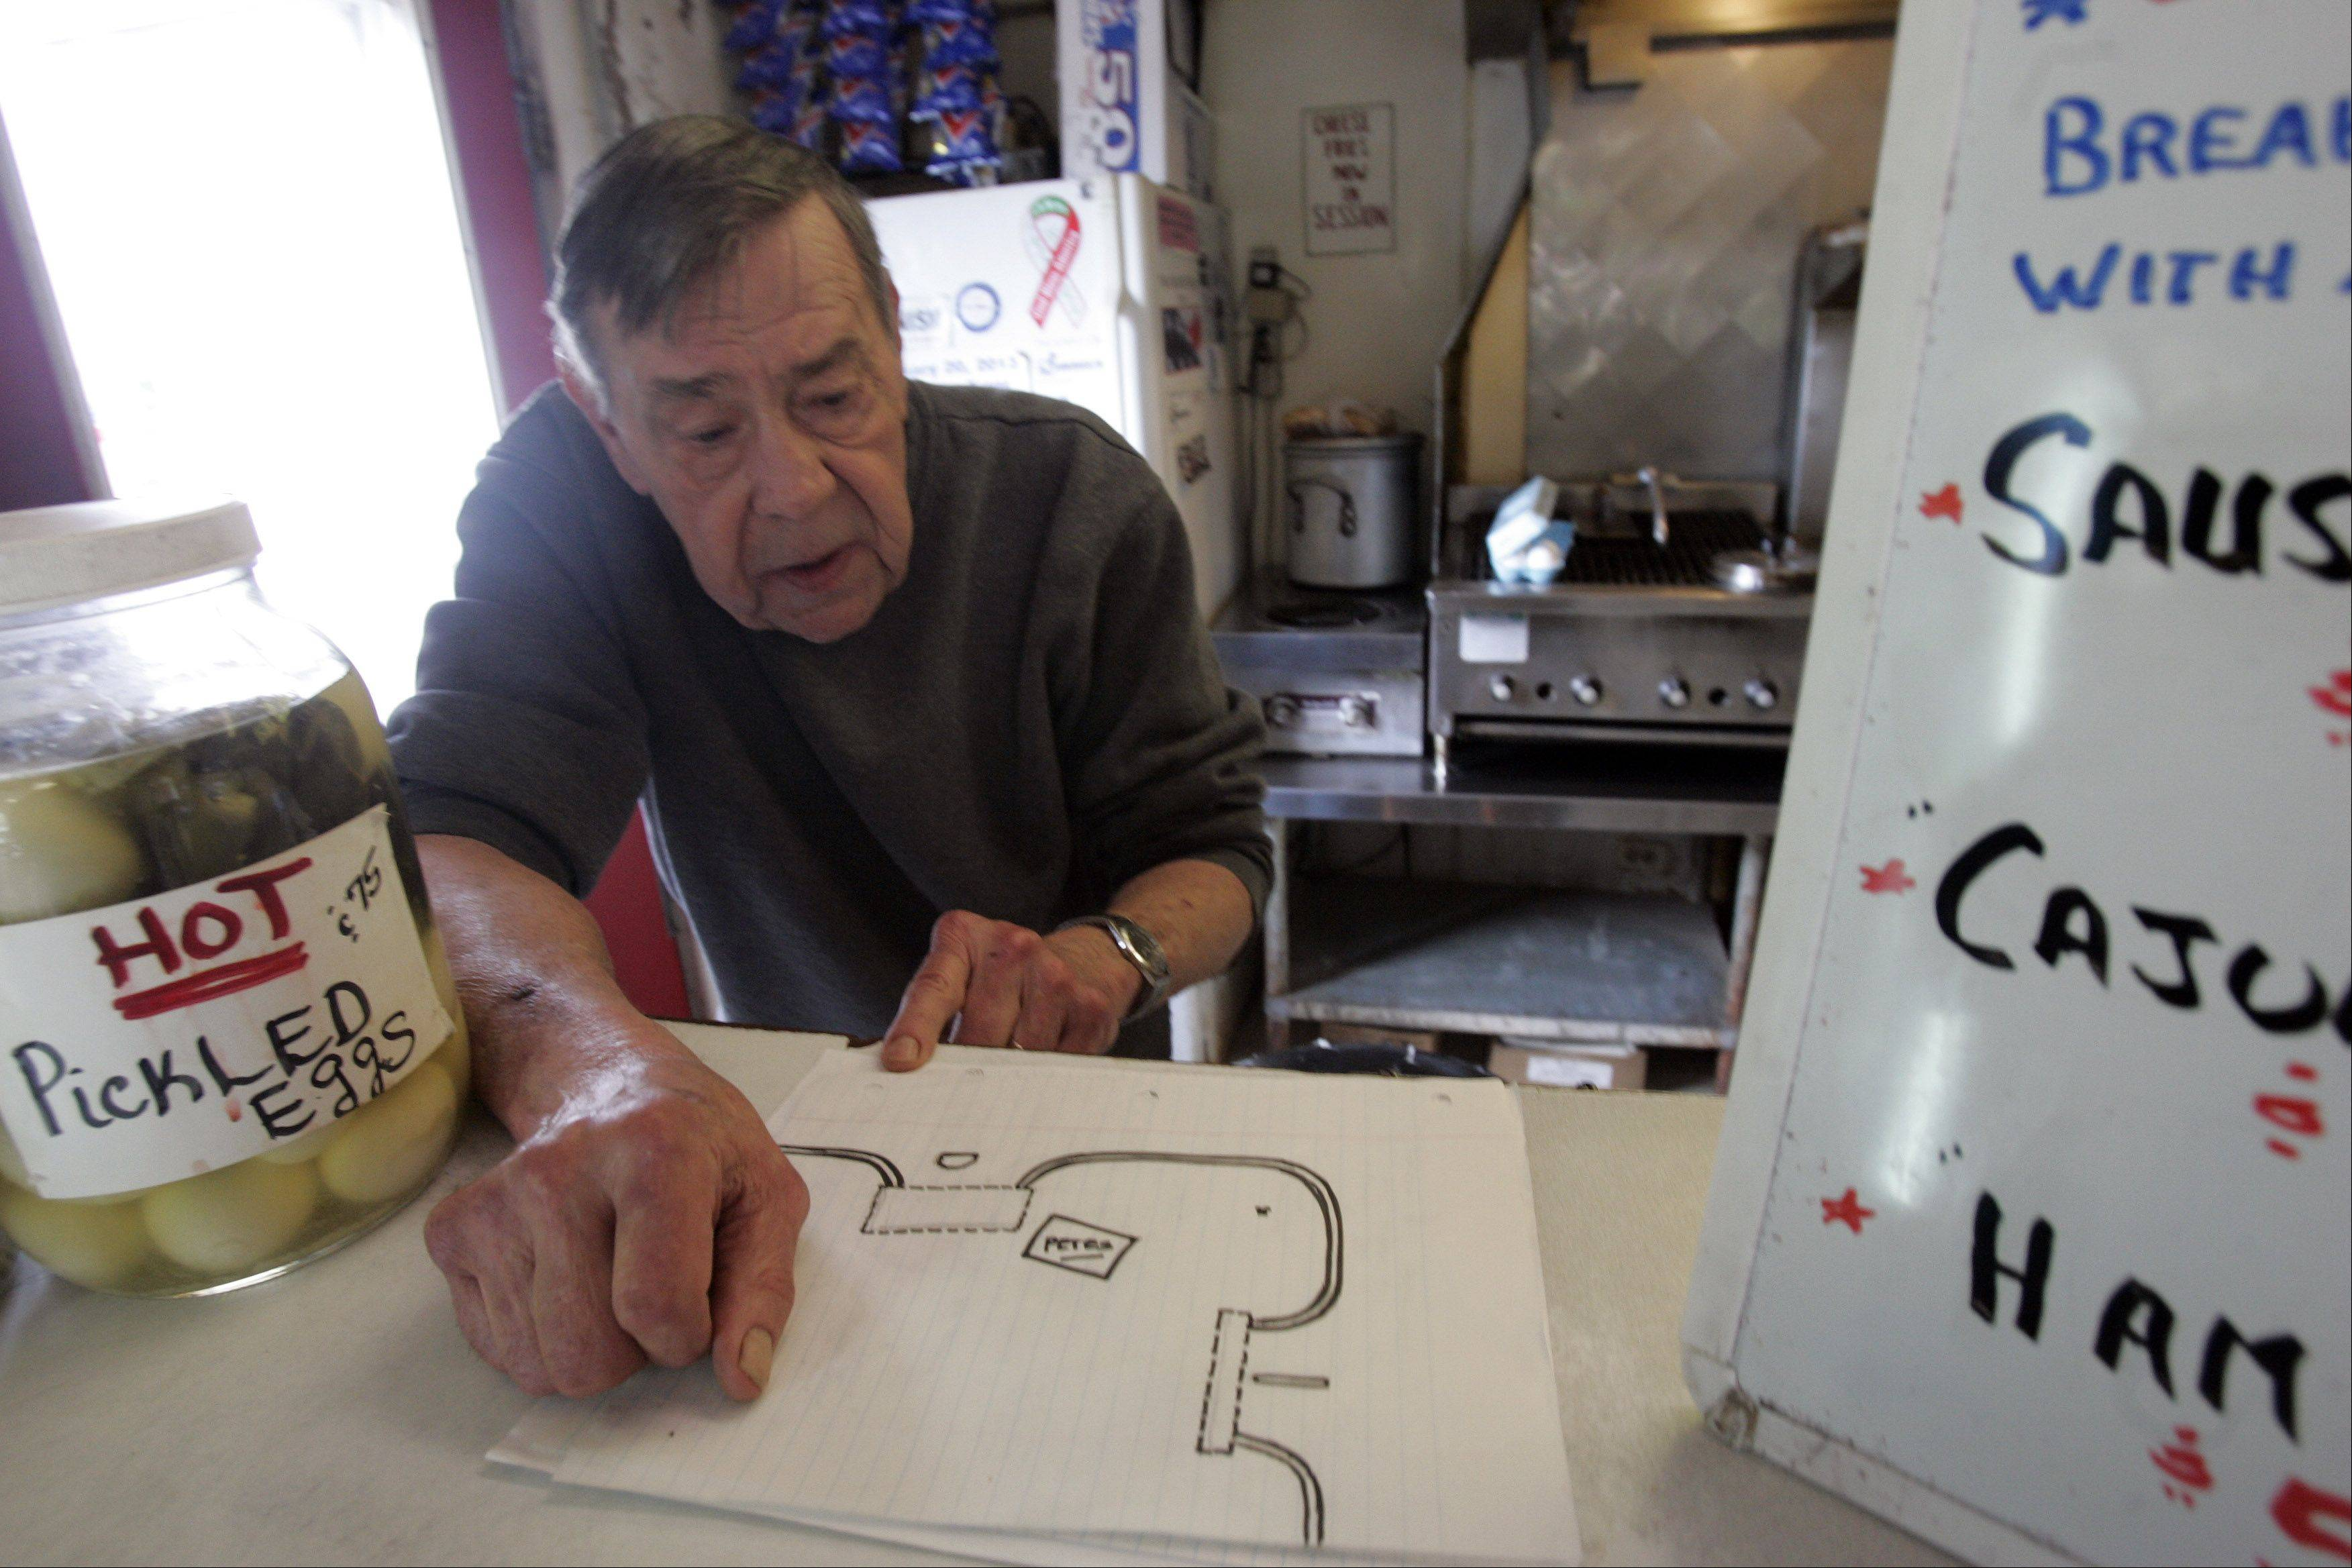 Peter Prevenas, owner of Pete's Famous Hot Dogs and Country Restaurant in Lily Lake, looks over a map he drew that shows how his property, specifically his parking lot, will be changed due to the changes being made at Routes 47 and 64. Customers will only be able to make right turns in and out of his business.